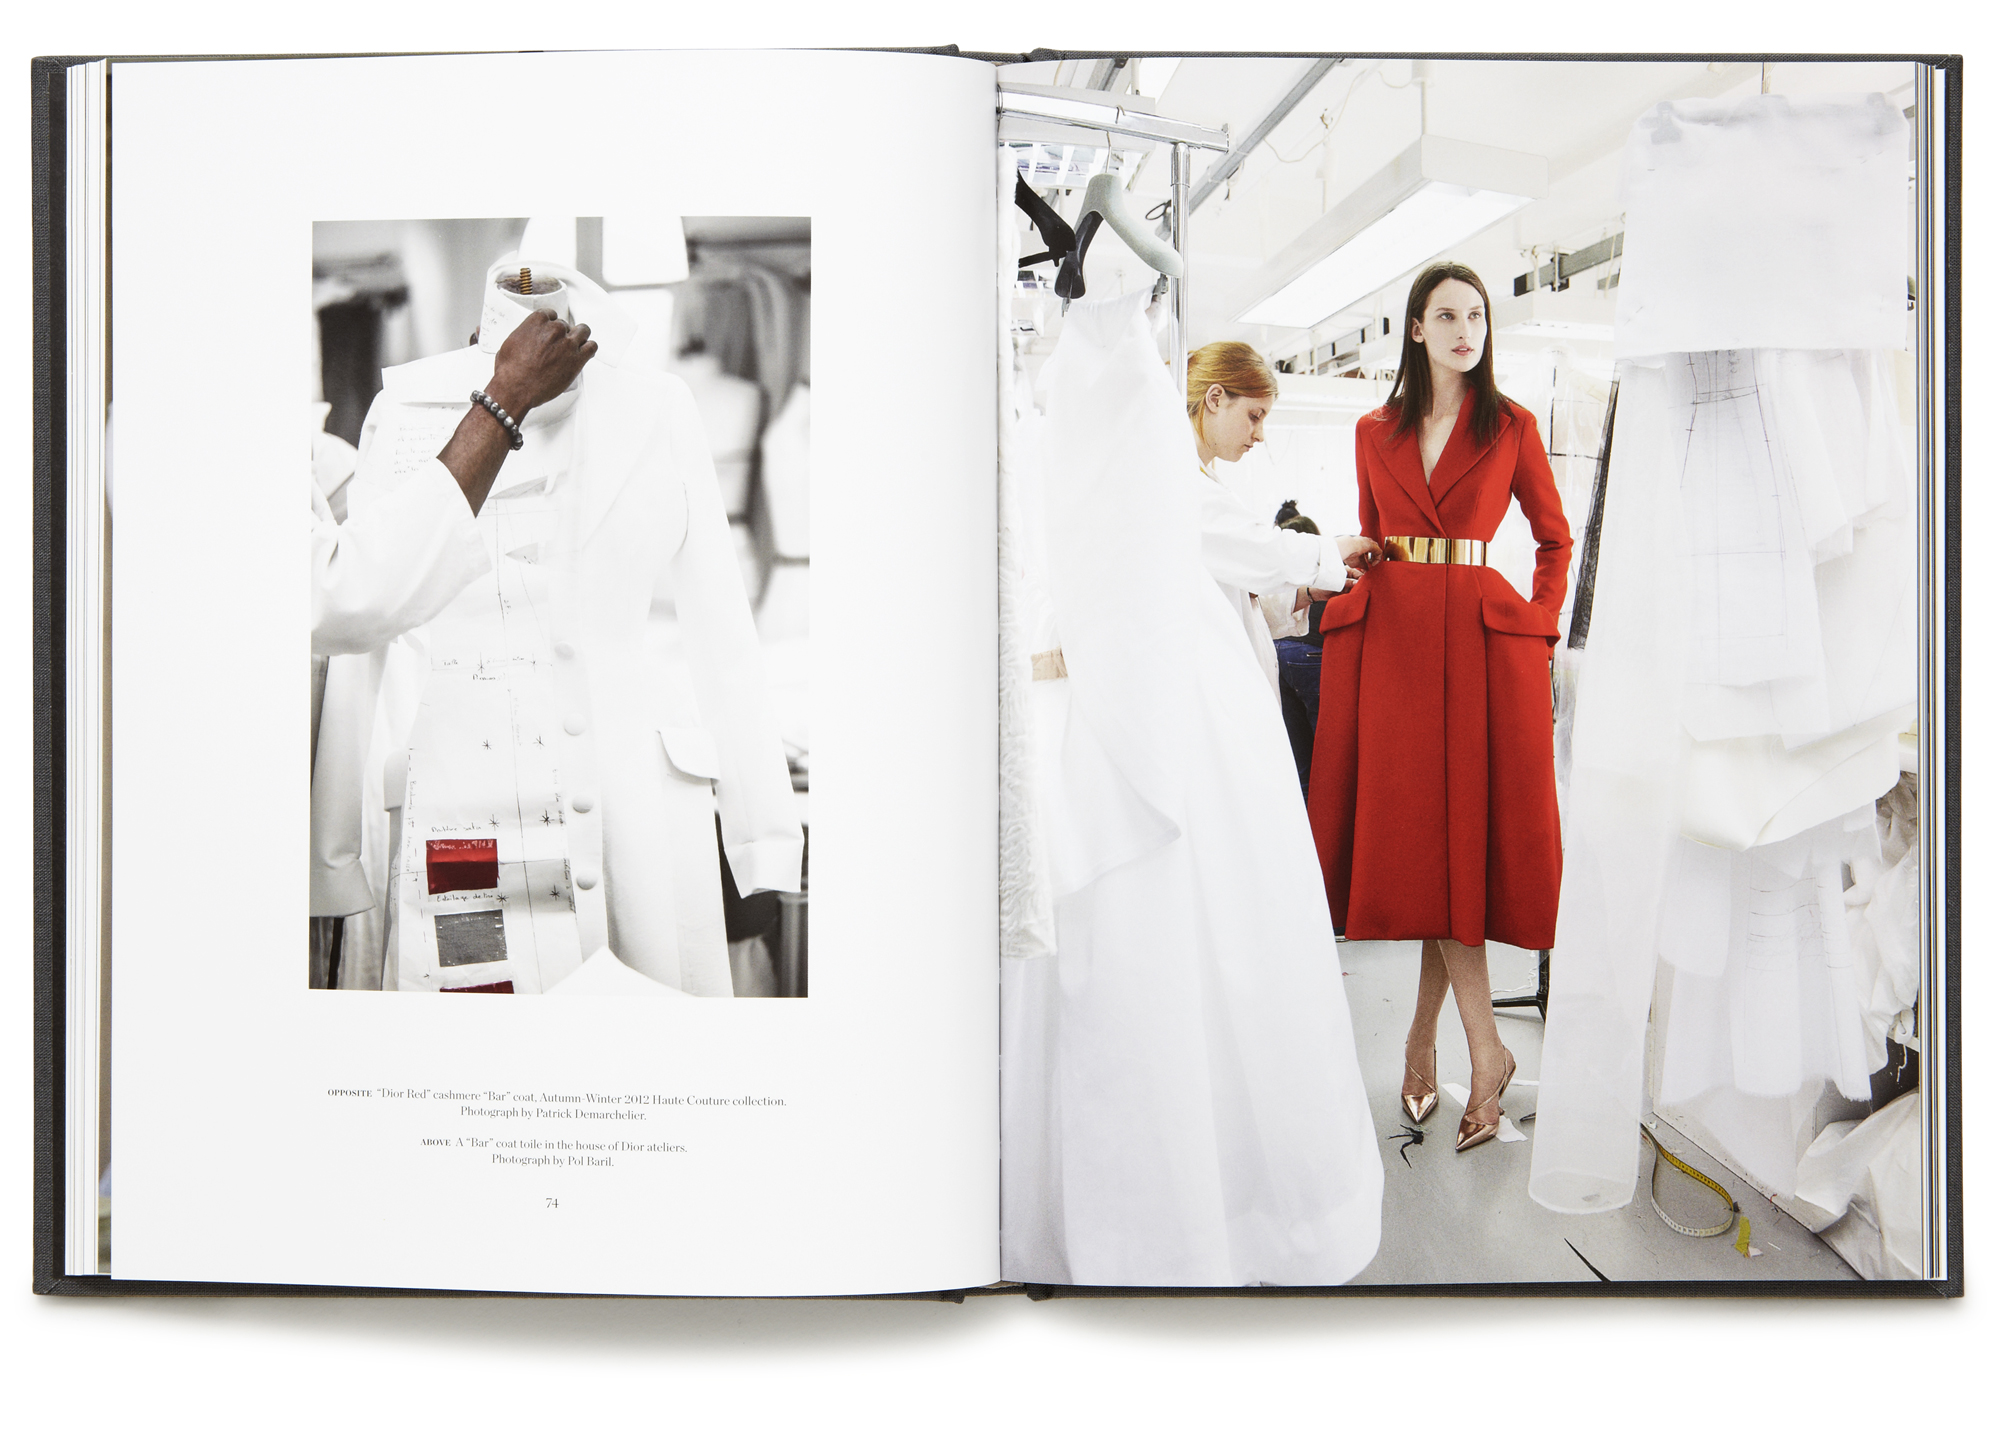 Daniel Baer – Dior – The New Look. <i>Rizzoli & Dior</i> 3